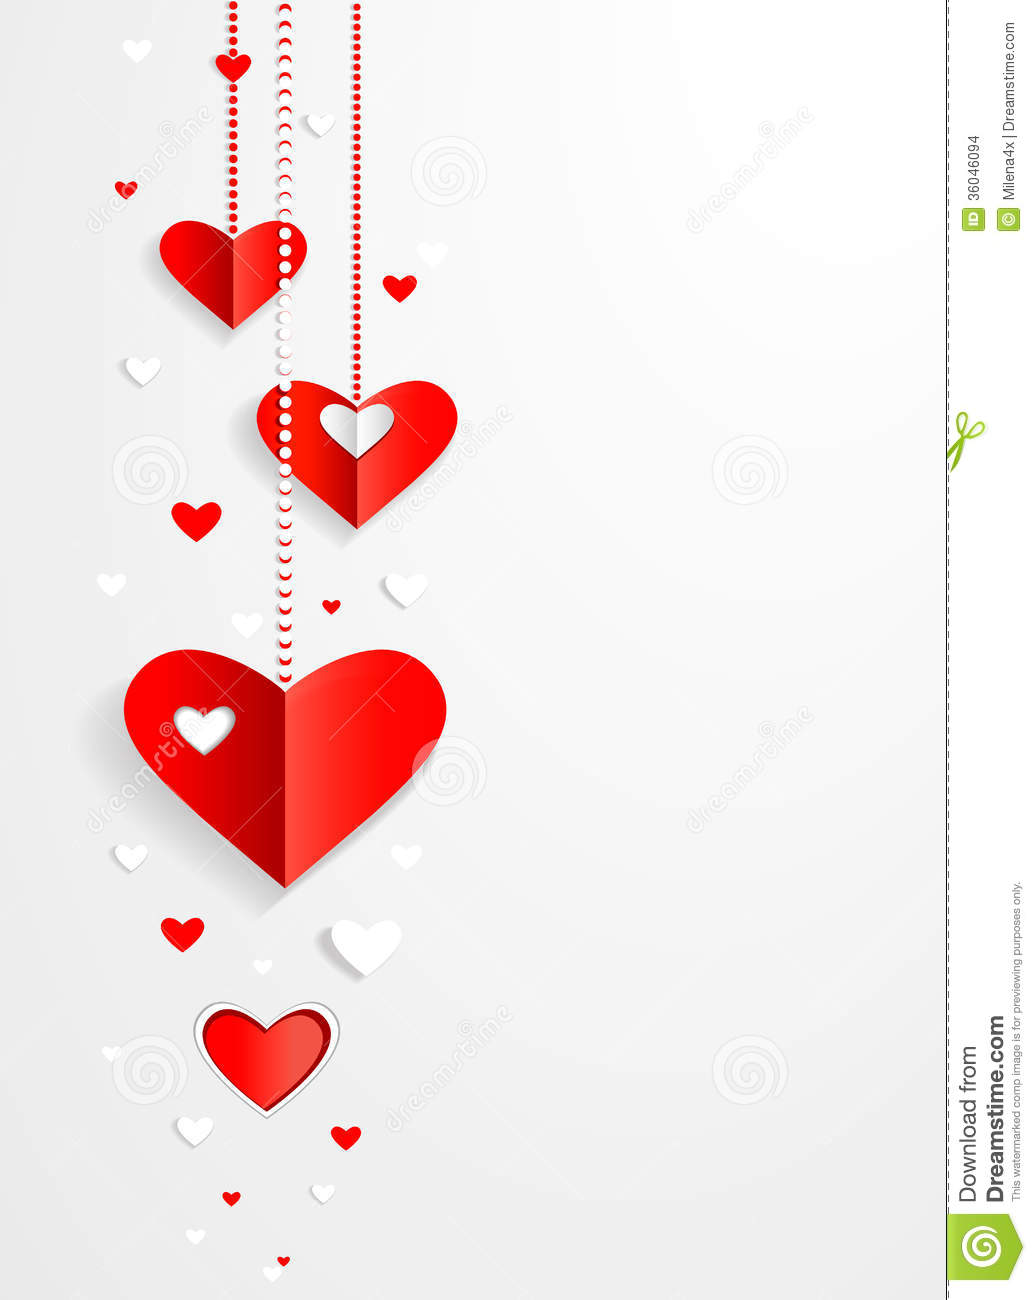 valentines day background clipart - photo #37